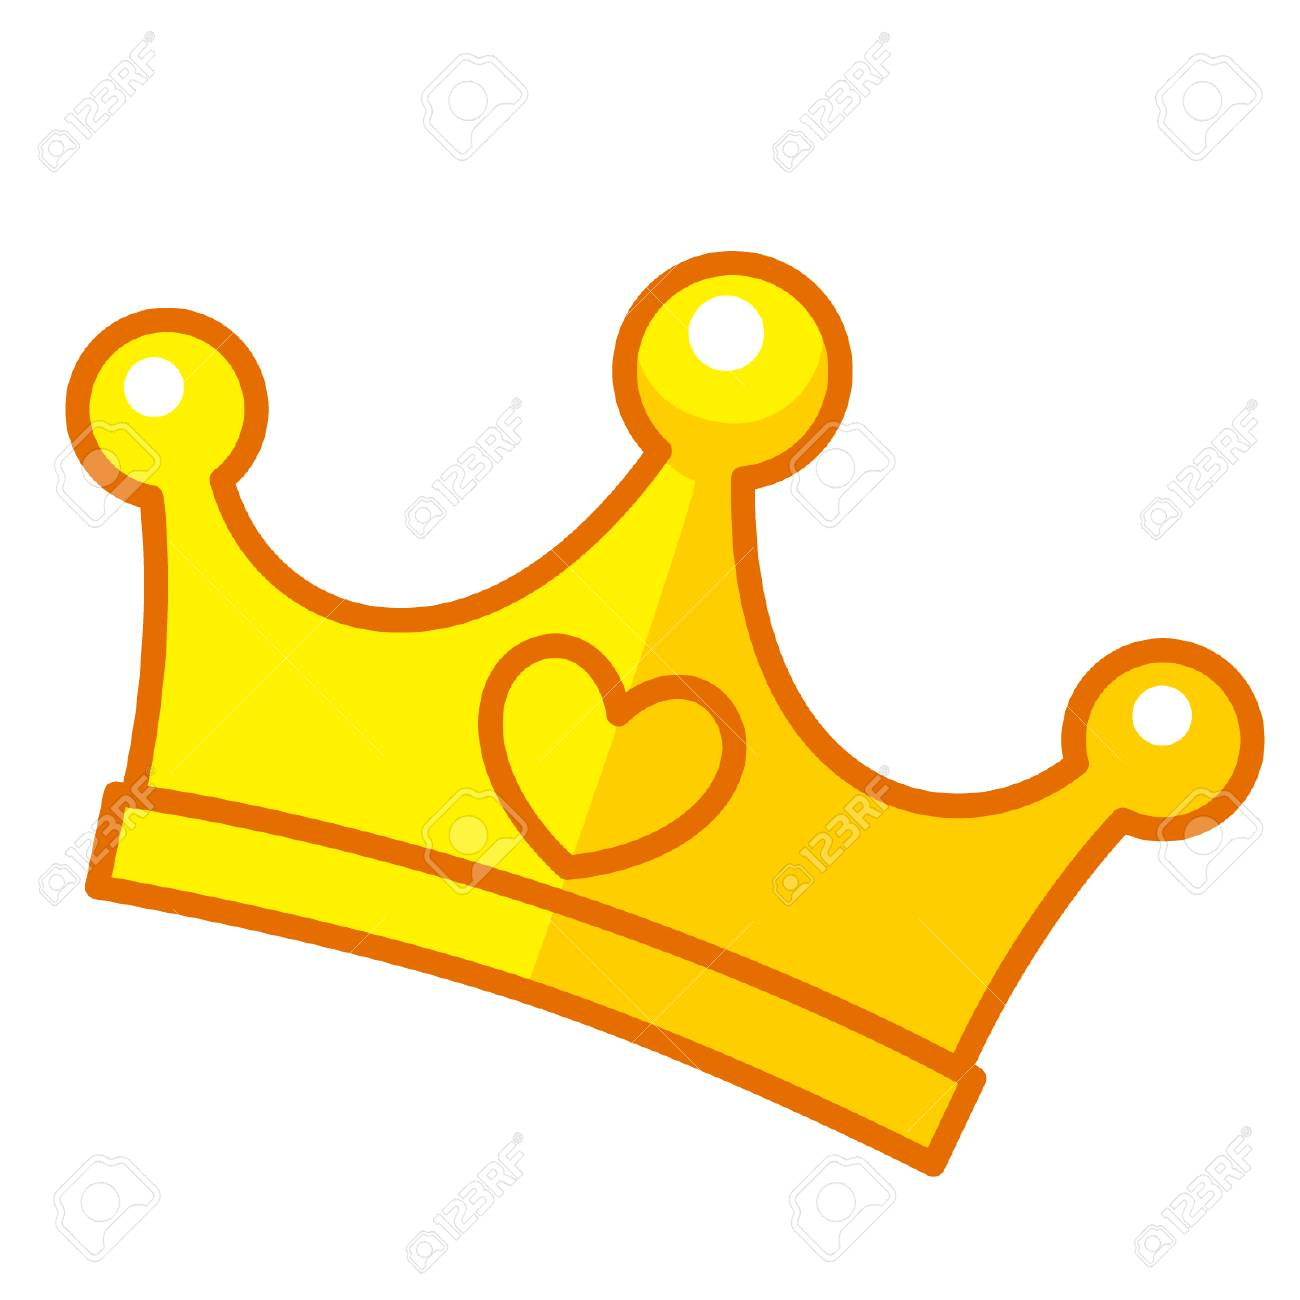 Cartoon Crown Free Cartoon Crown Png Transparent Images 39150 Pngio Pin amazing png images that you like. cartoon crown png transparent